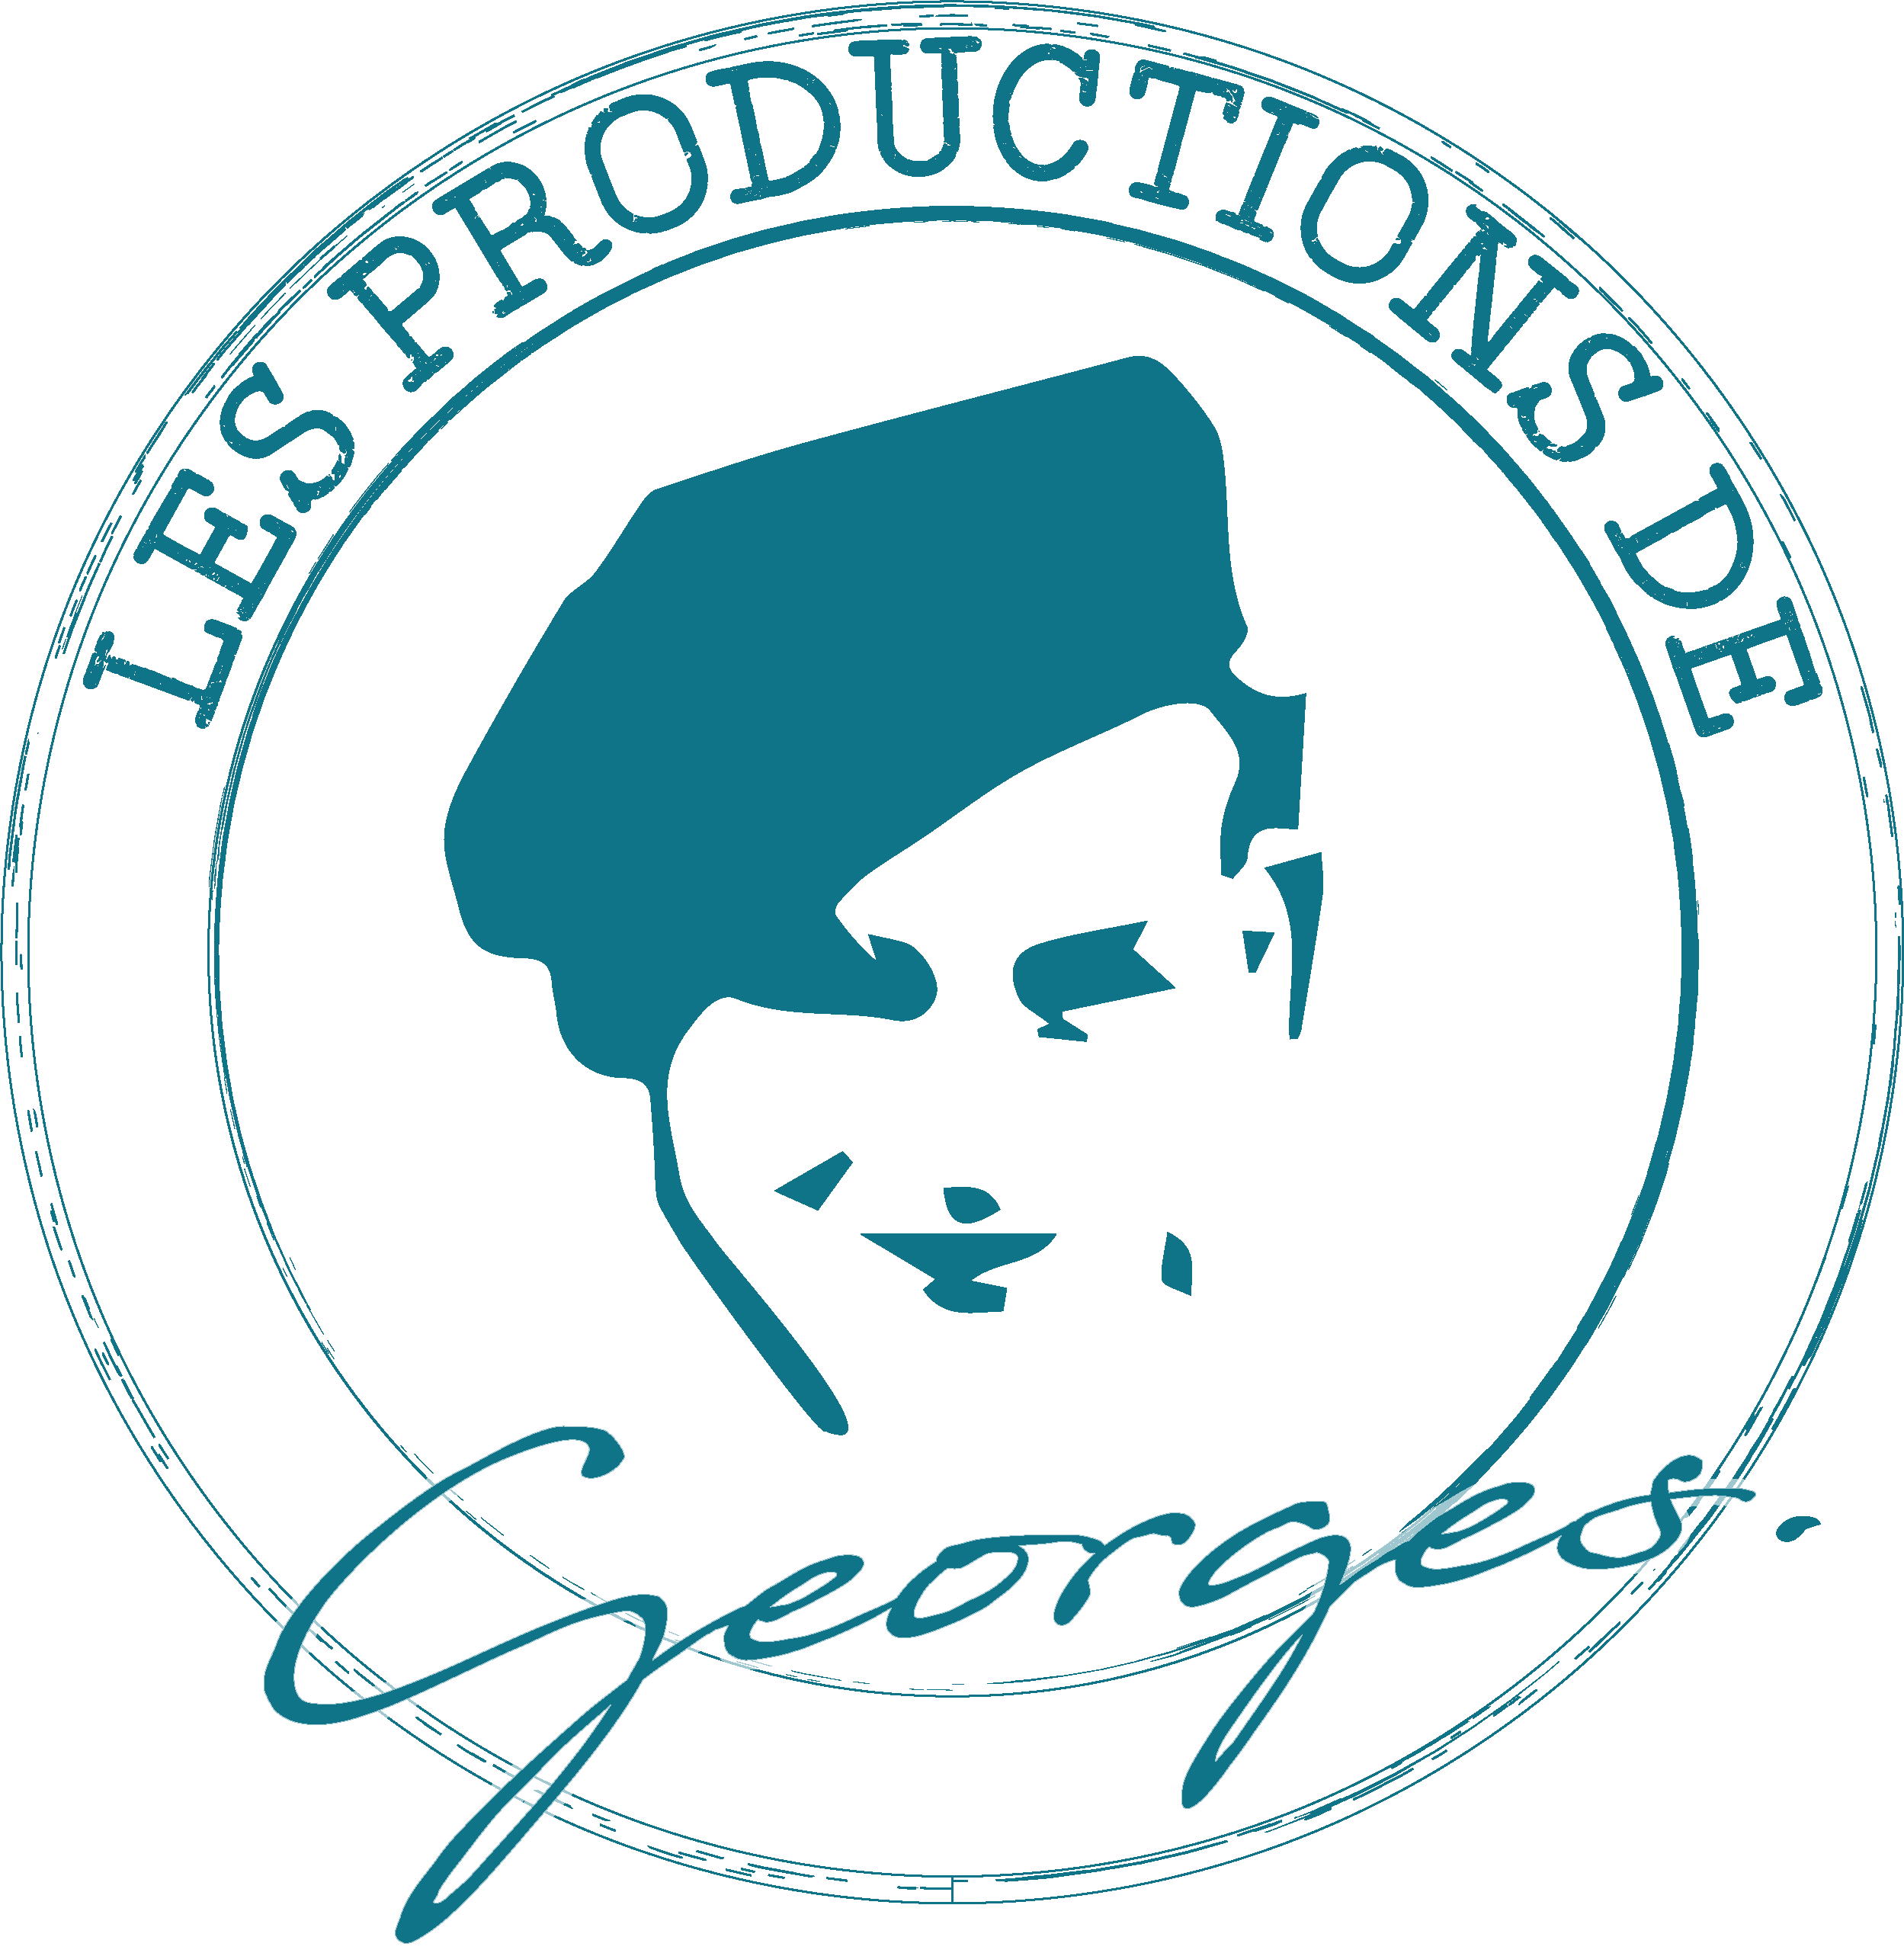 Les Productions de Georges